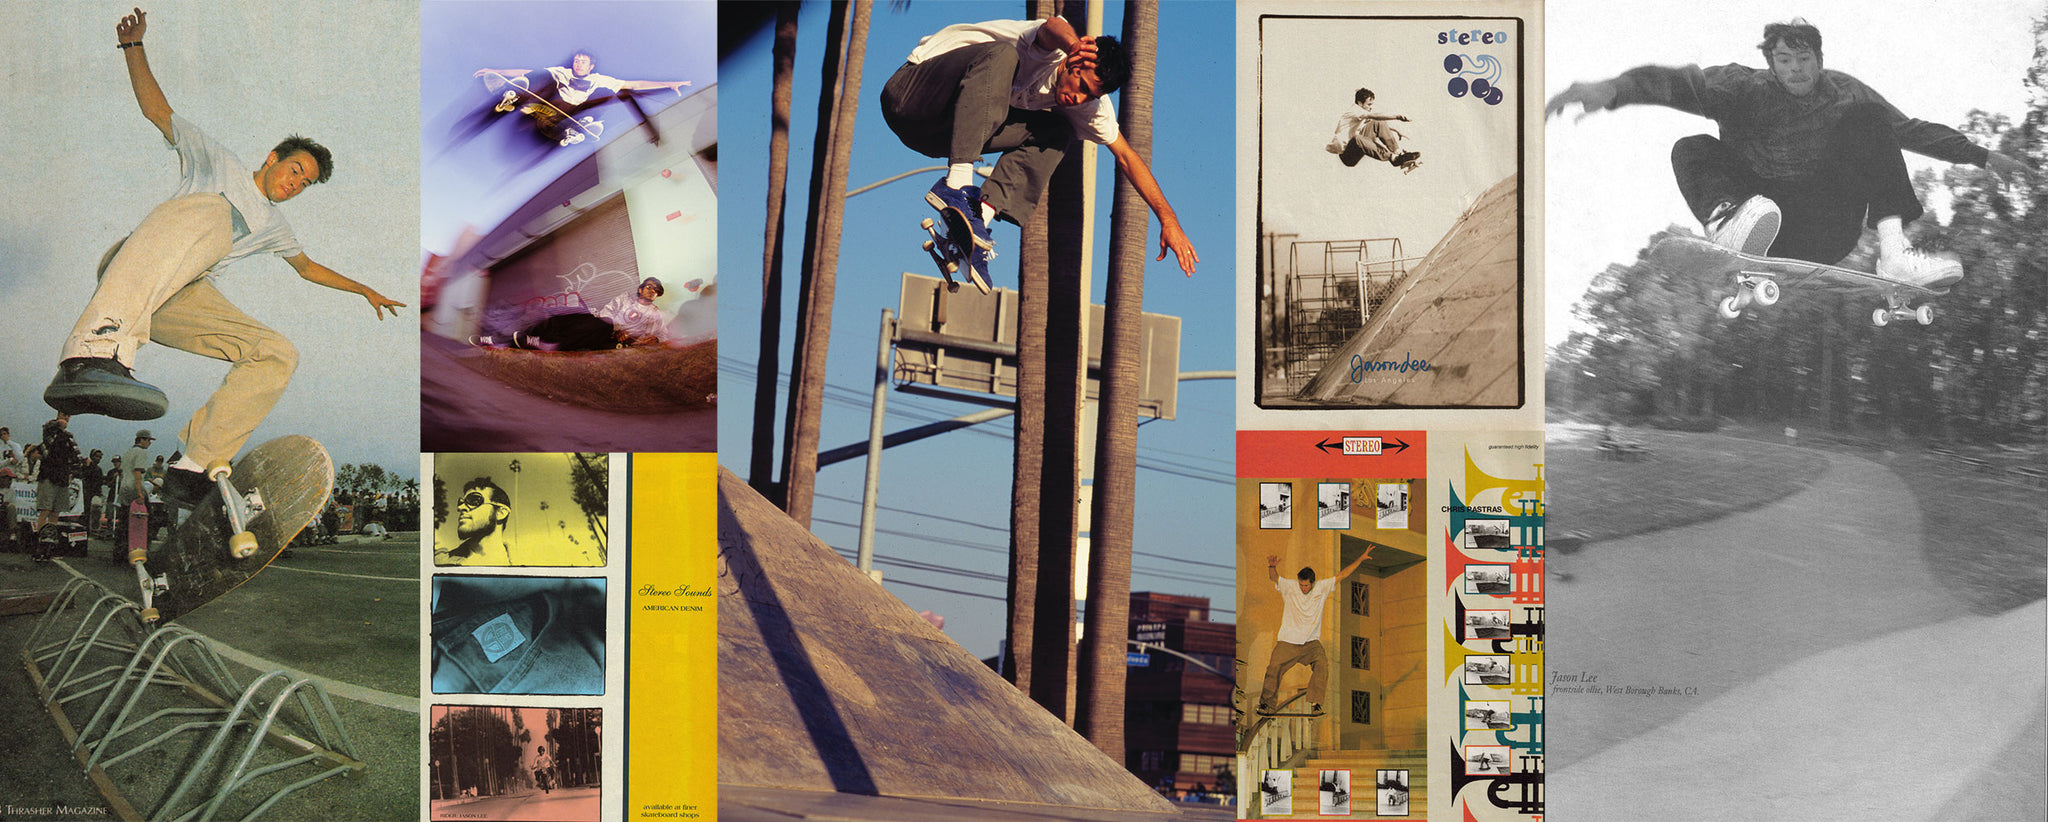 Skateboarding Hall of Fame 2019 Inductee: Jason Lee